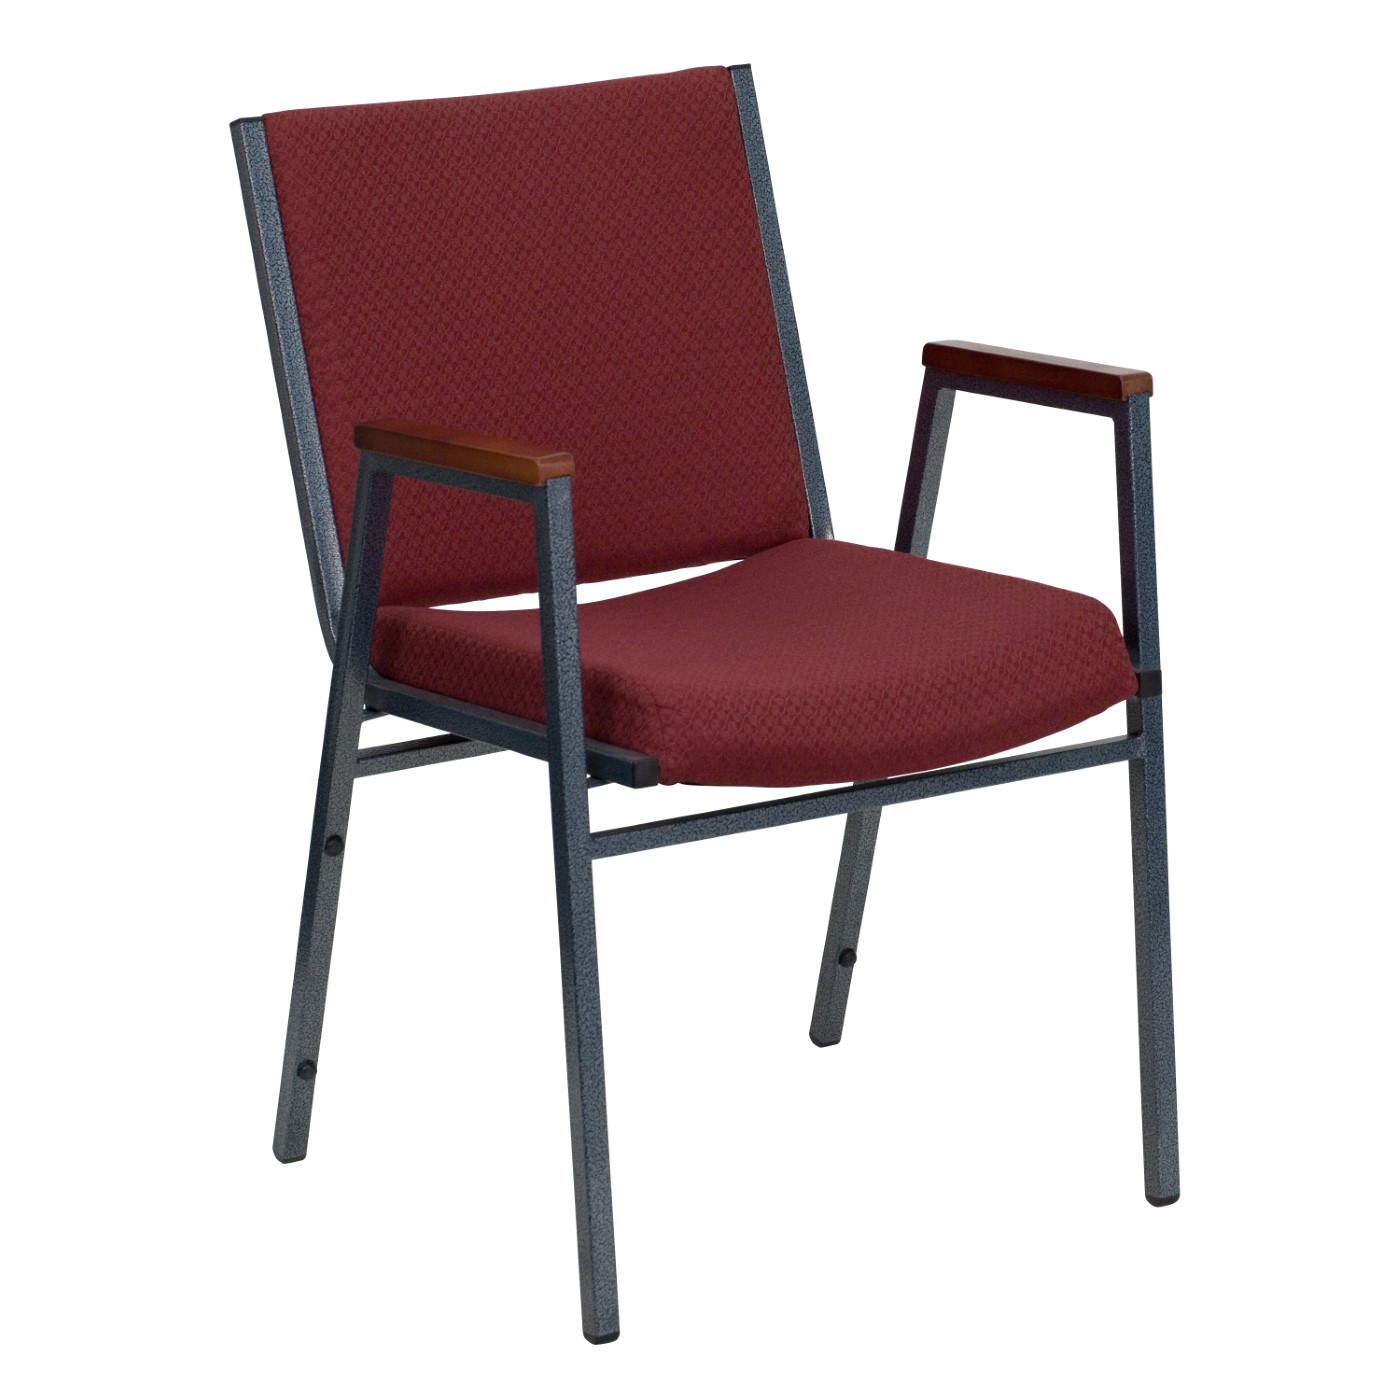 TOUGH ENOUGH Series Heavy Duty Burgundy Patterned Fabric Stack Chair with Arms